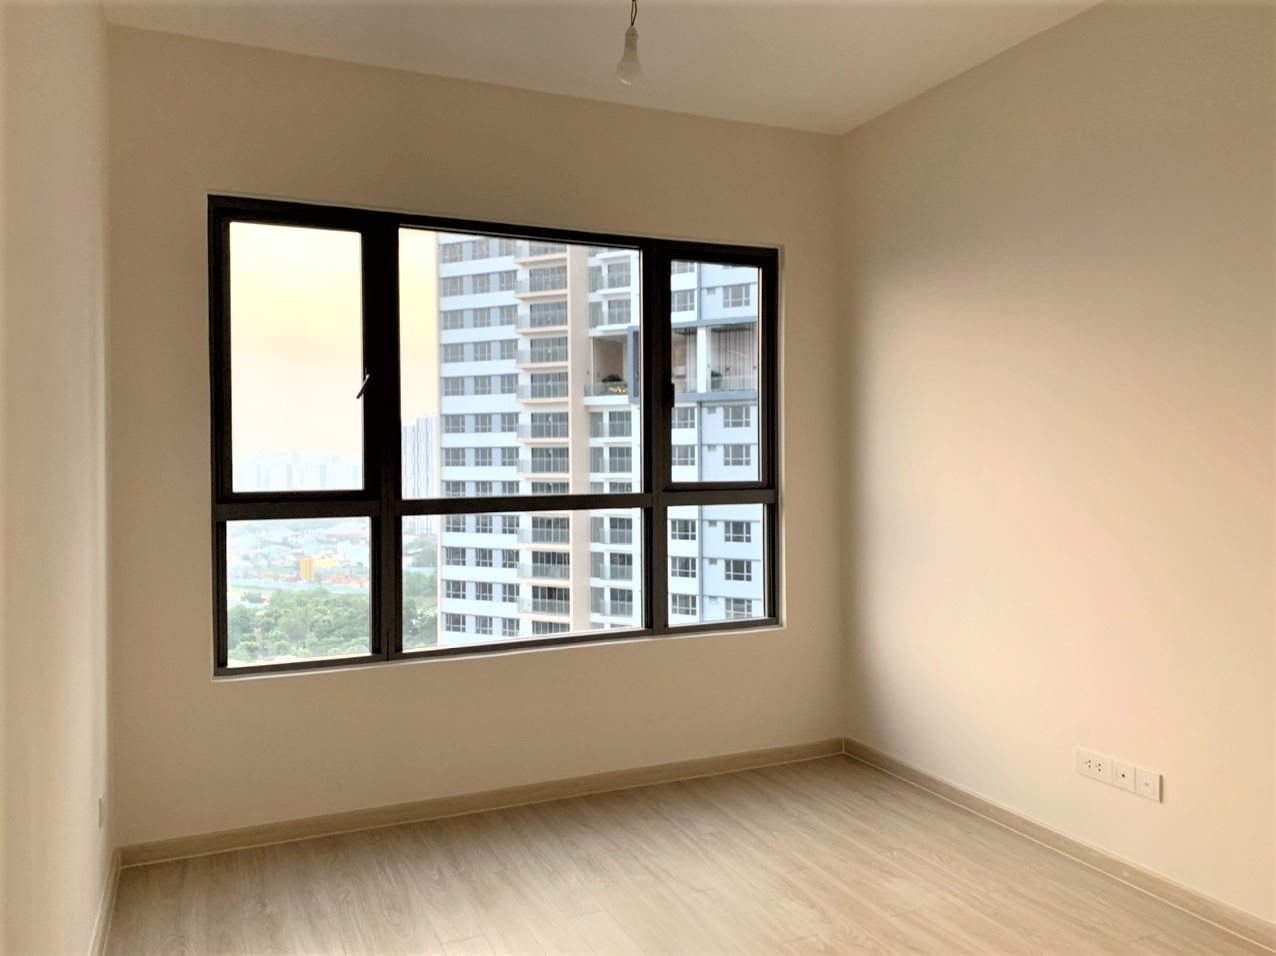 Apartment for rent D230435 (3)